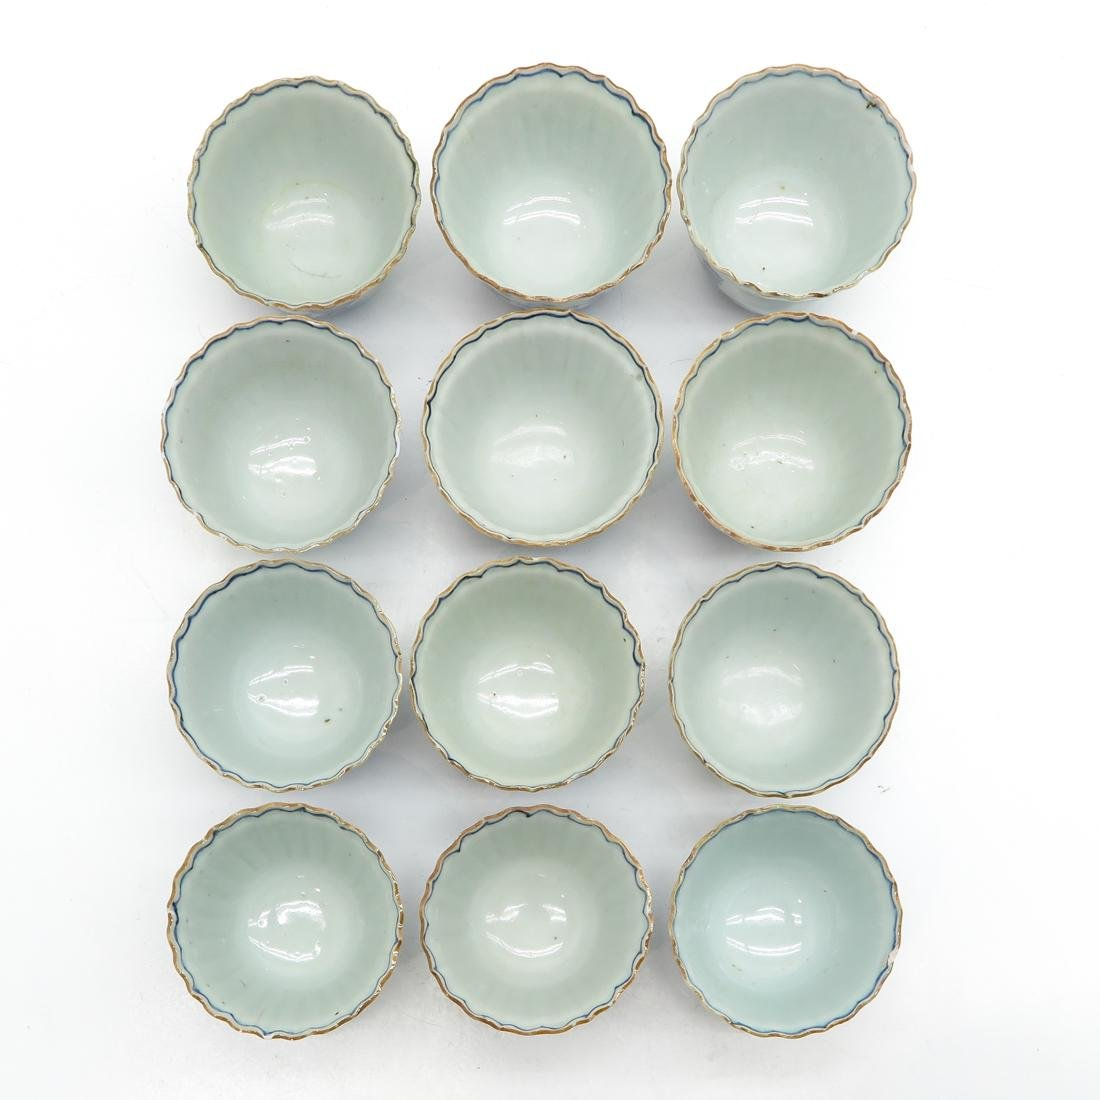 Lot of 12 Cups and Saucers - 7